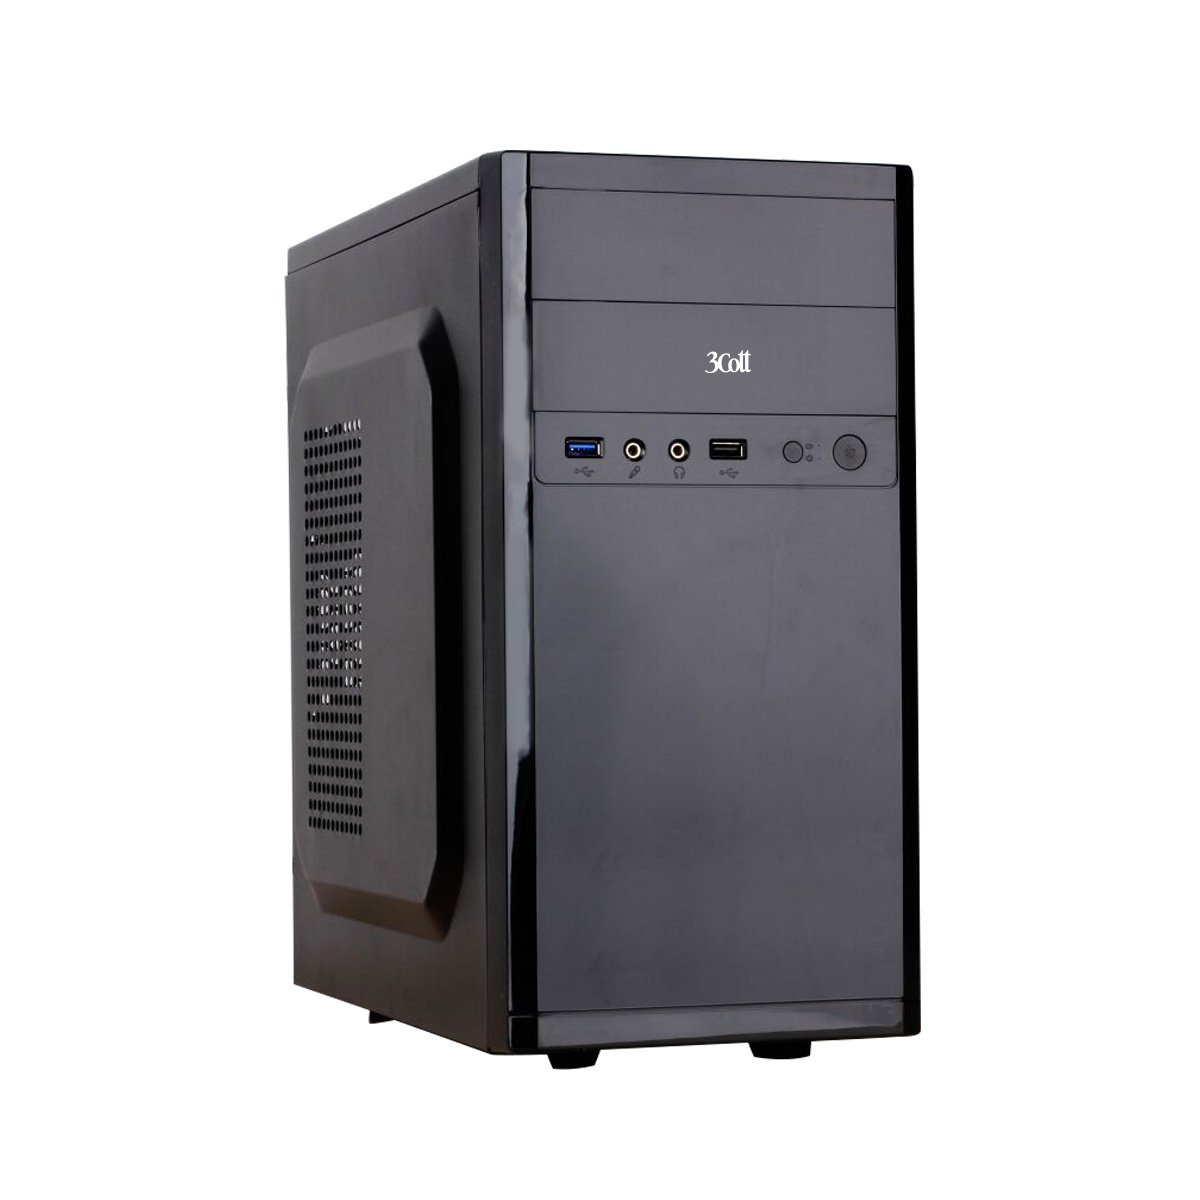 Компьютер Office 106 AMD A4 6300/2Gb/500Gb/D-Sub+Digital